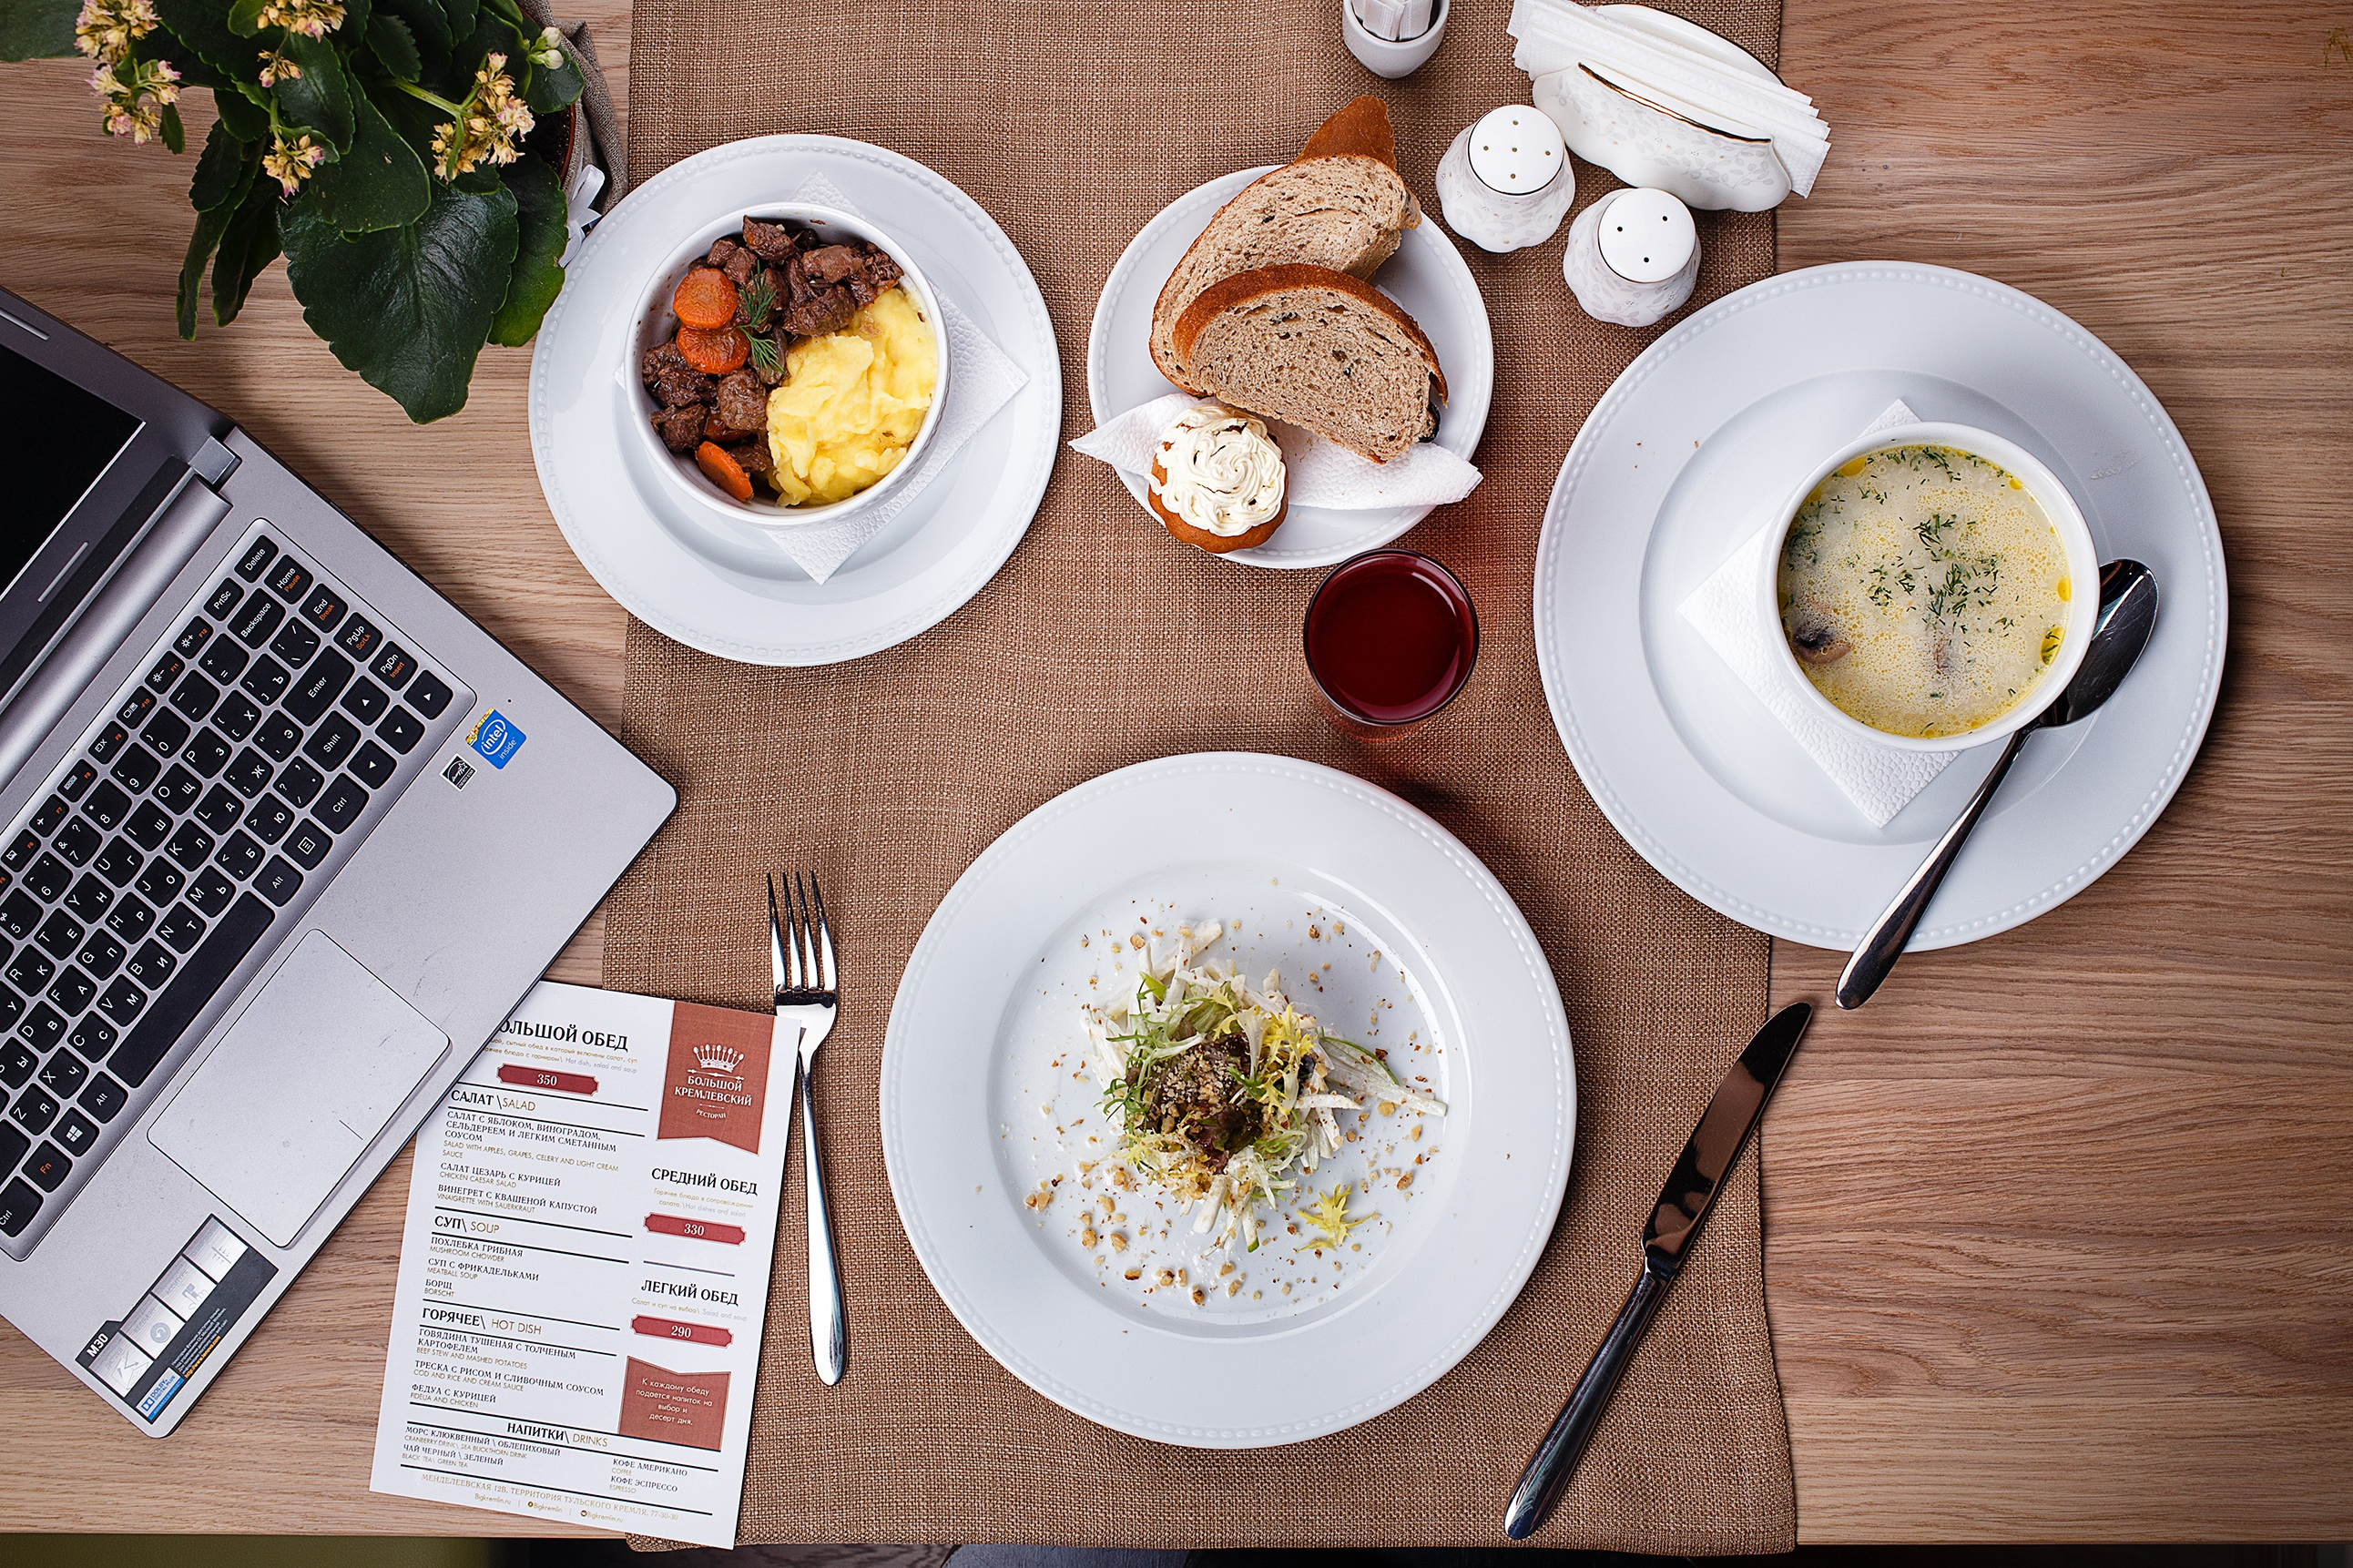 food-business-lunch-restaurant-lunch-163018